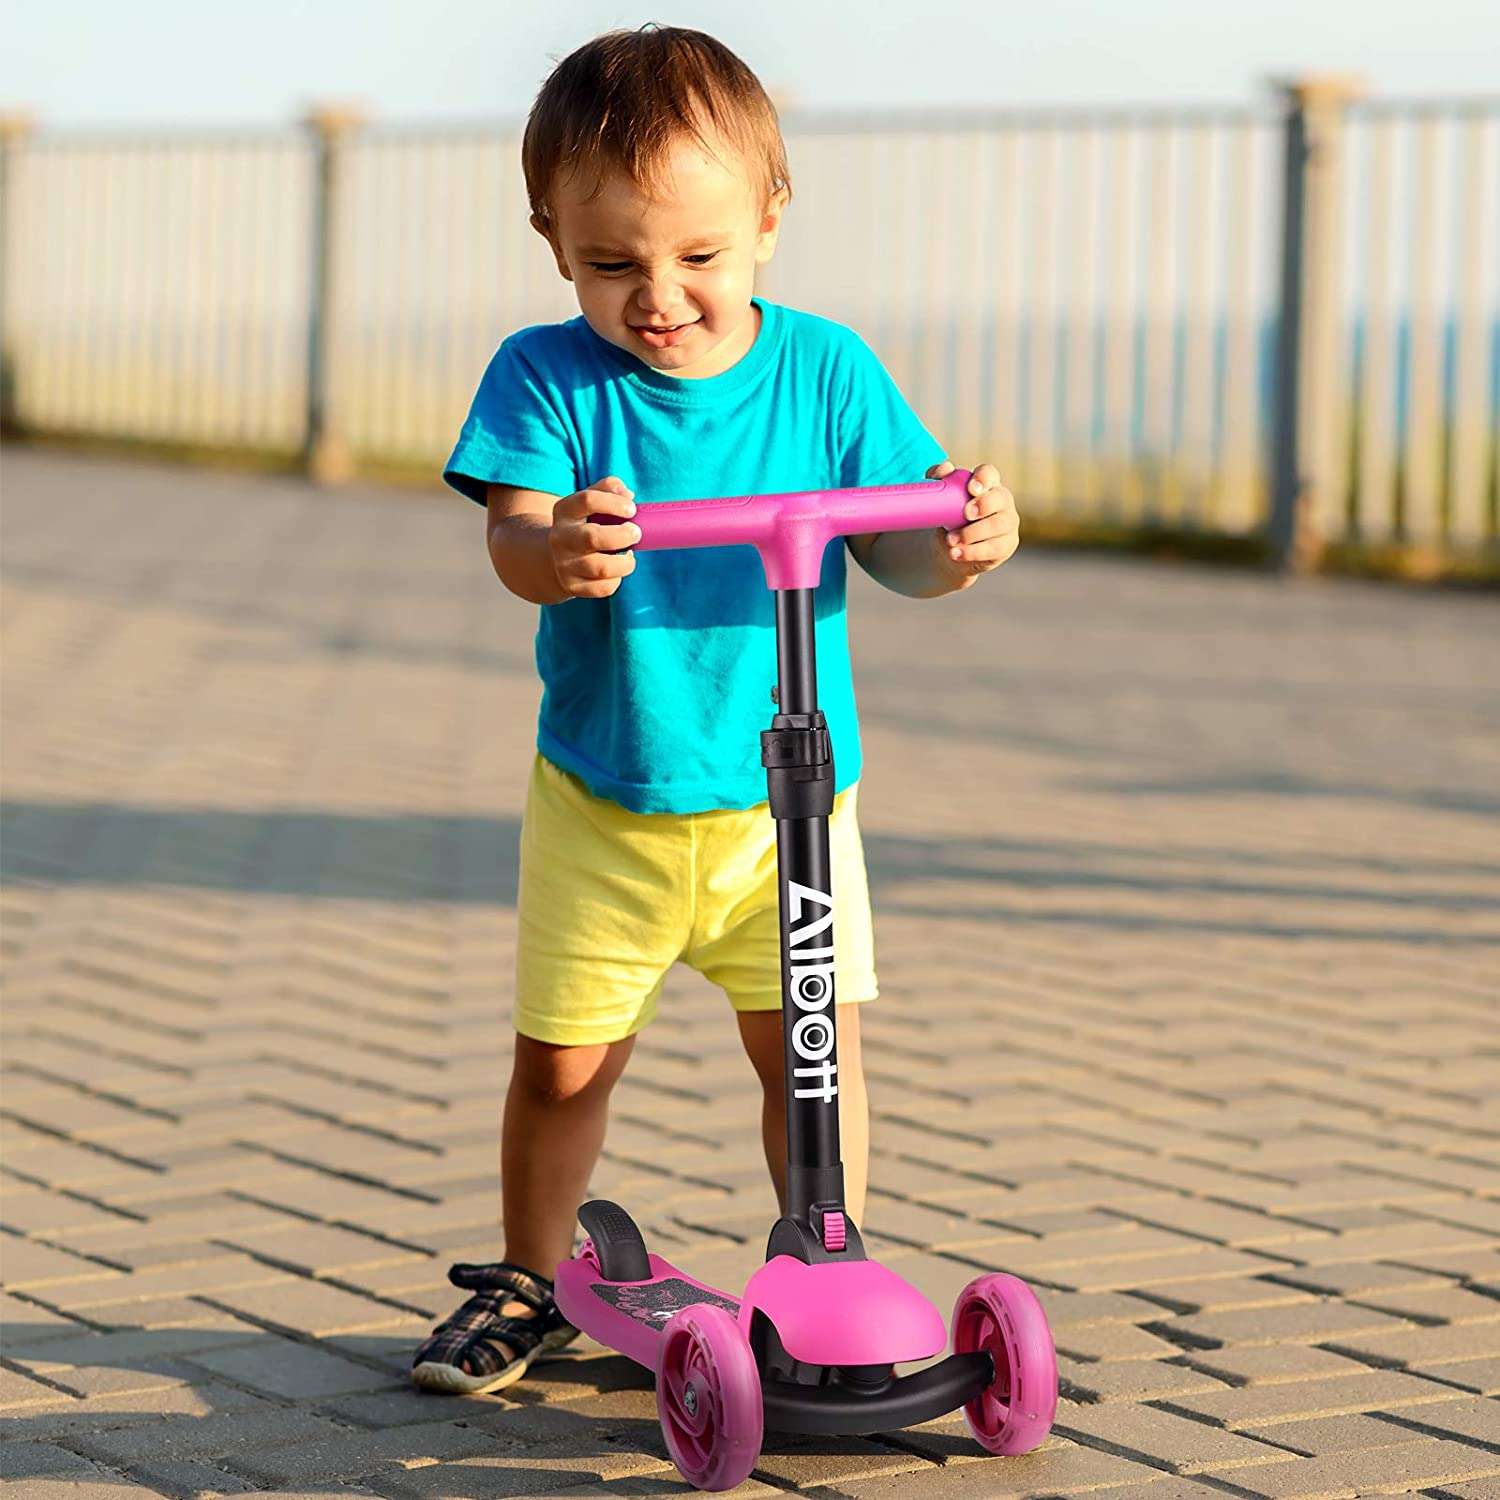 Albott 3 Wheels Kick Scooter for Kids and Toddlers Adjustable Height Folding Kid Scooter with Extra Wide Deck and PU LED Flashing Wheel No Assembly Required for 3 to 9 Years Boys and Girls